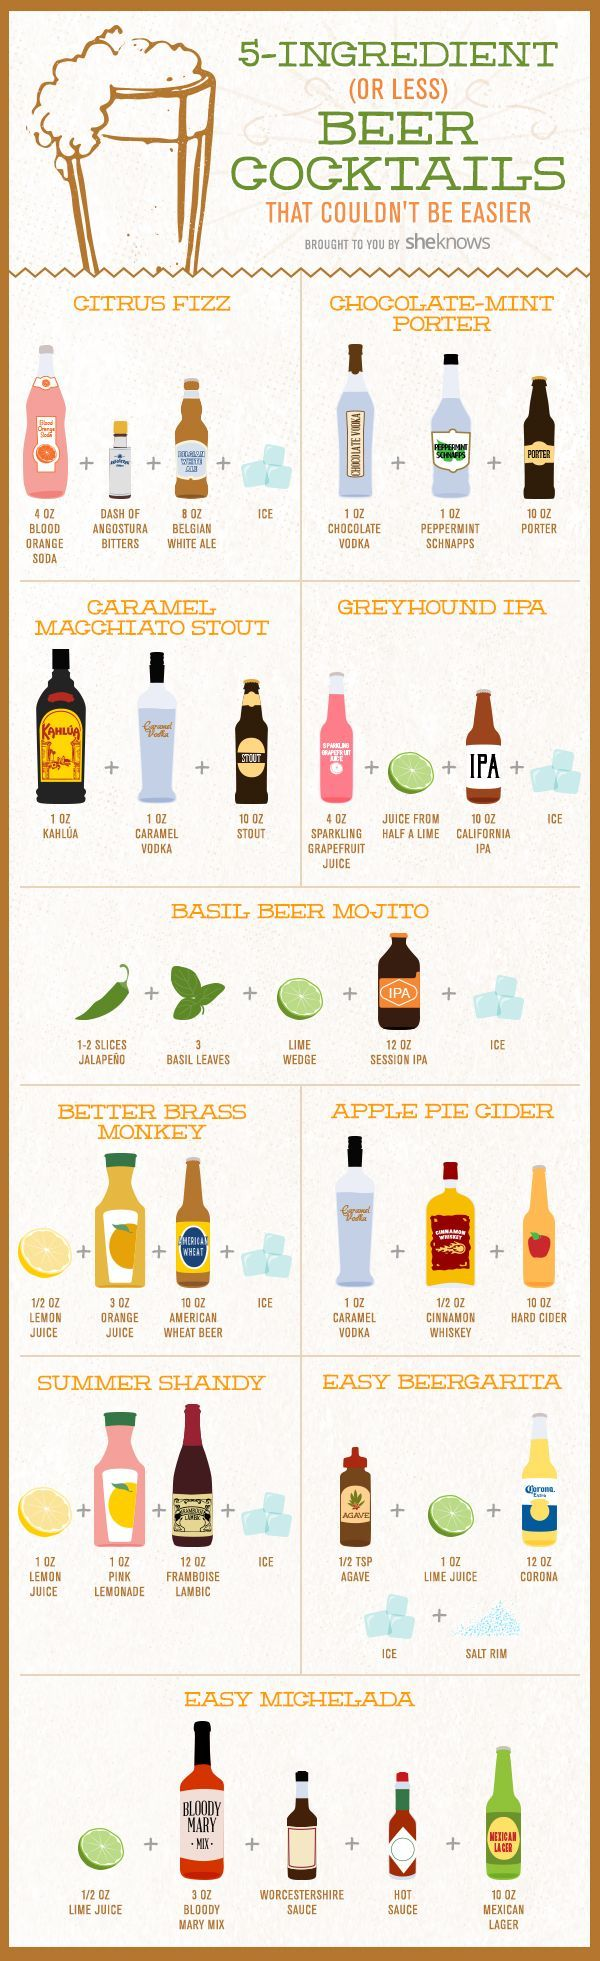 10 Super-easy beer cocktails with 5 ingredients or less - Custom illustrations and design made for SheKnows #GraphicDesign #cocktailrecipes